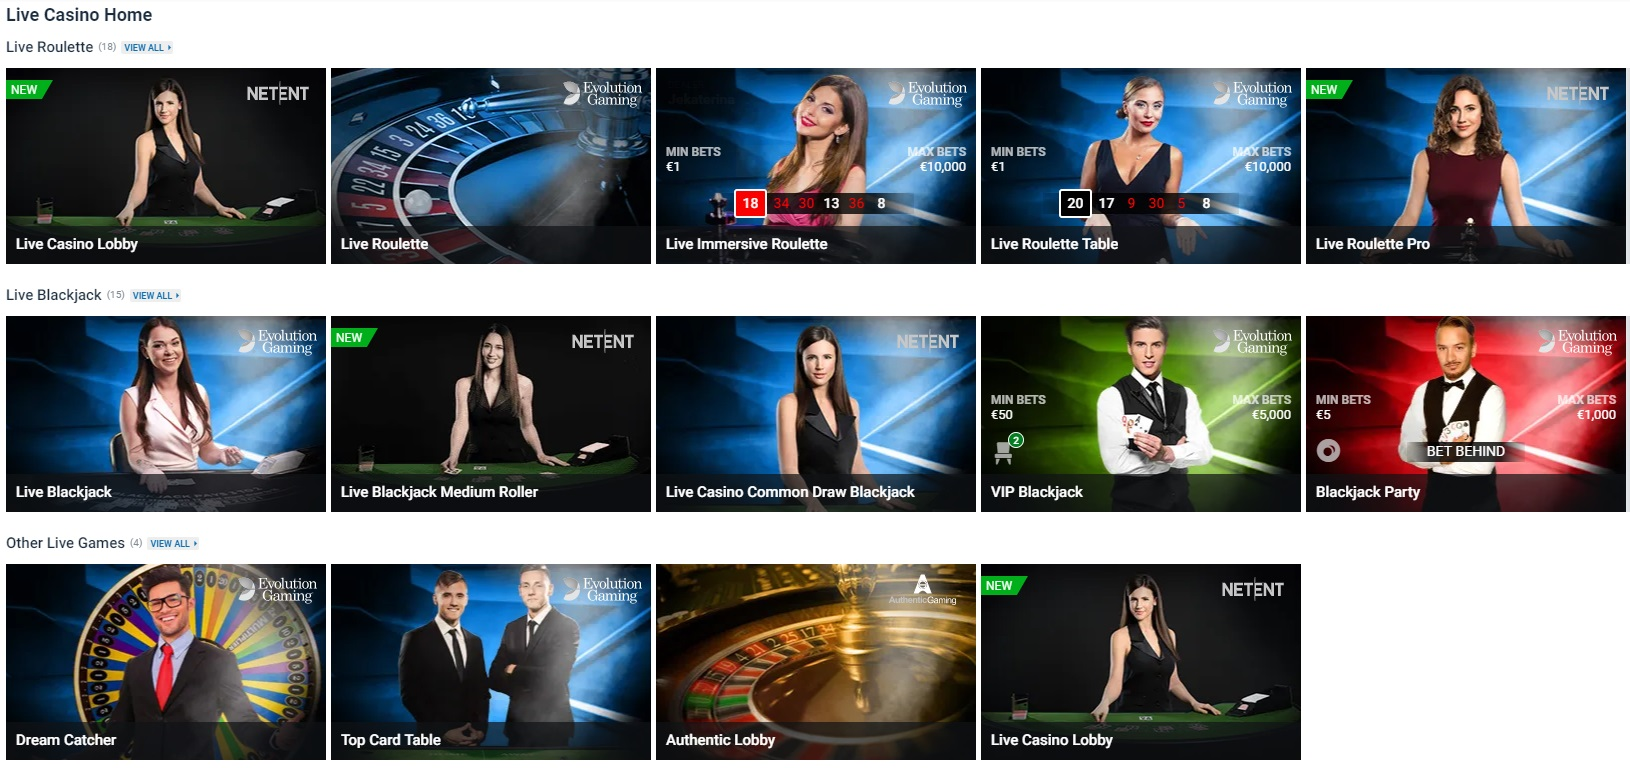 Live Casino lobby at Nordicbet